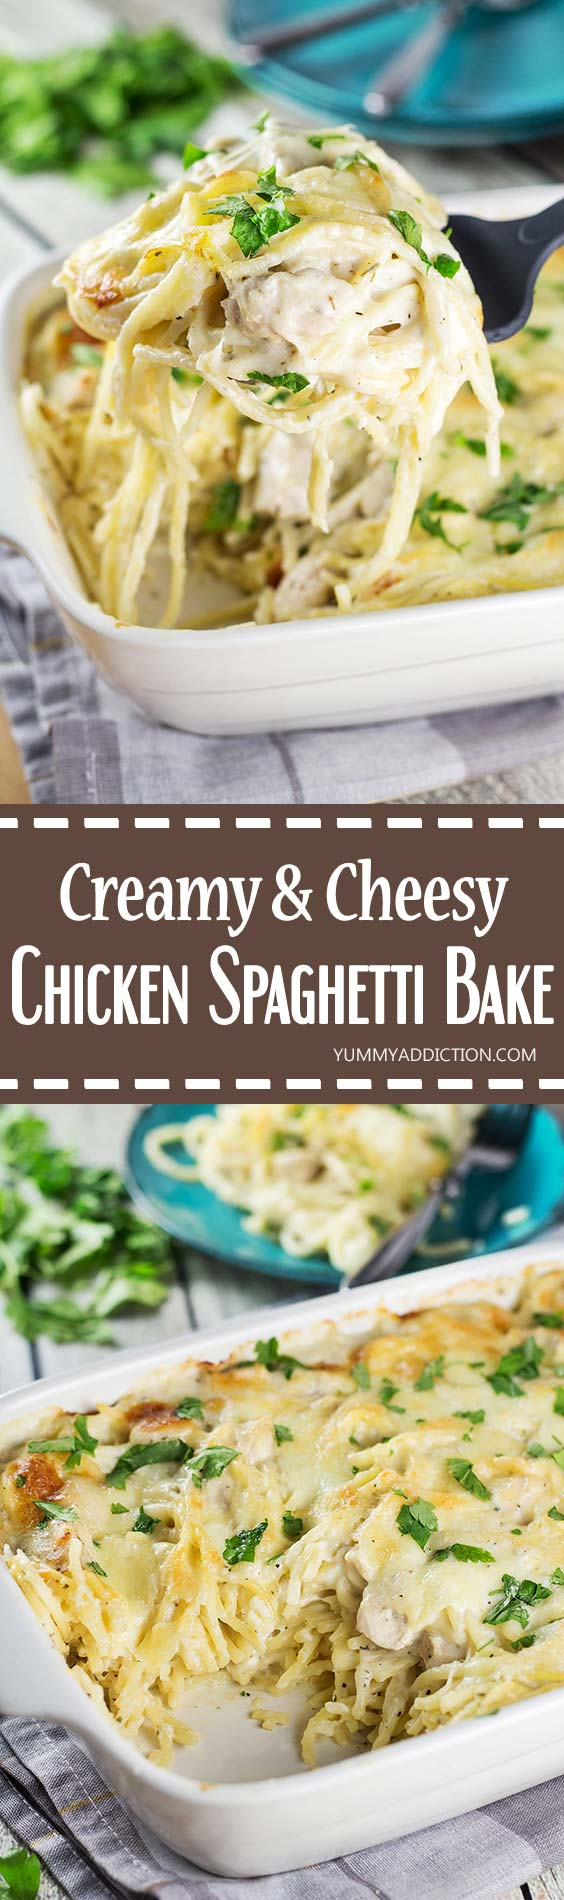 Cheesy Chicken Spaghetti Bake for dinner? Your family will thank you! Comforting, filling, and super easy & quick to make. What else do you need? | yummyaddiction.com